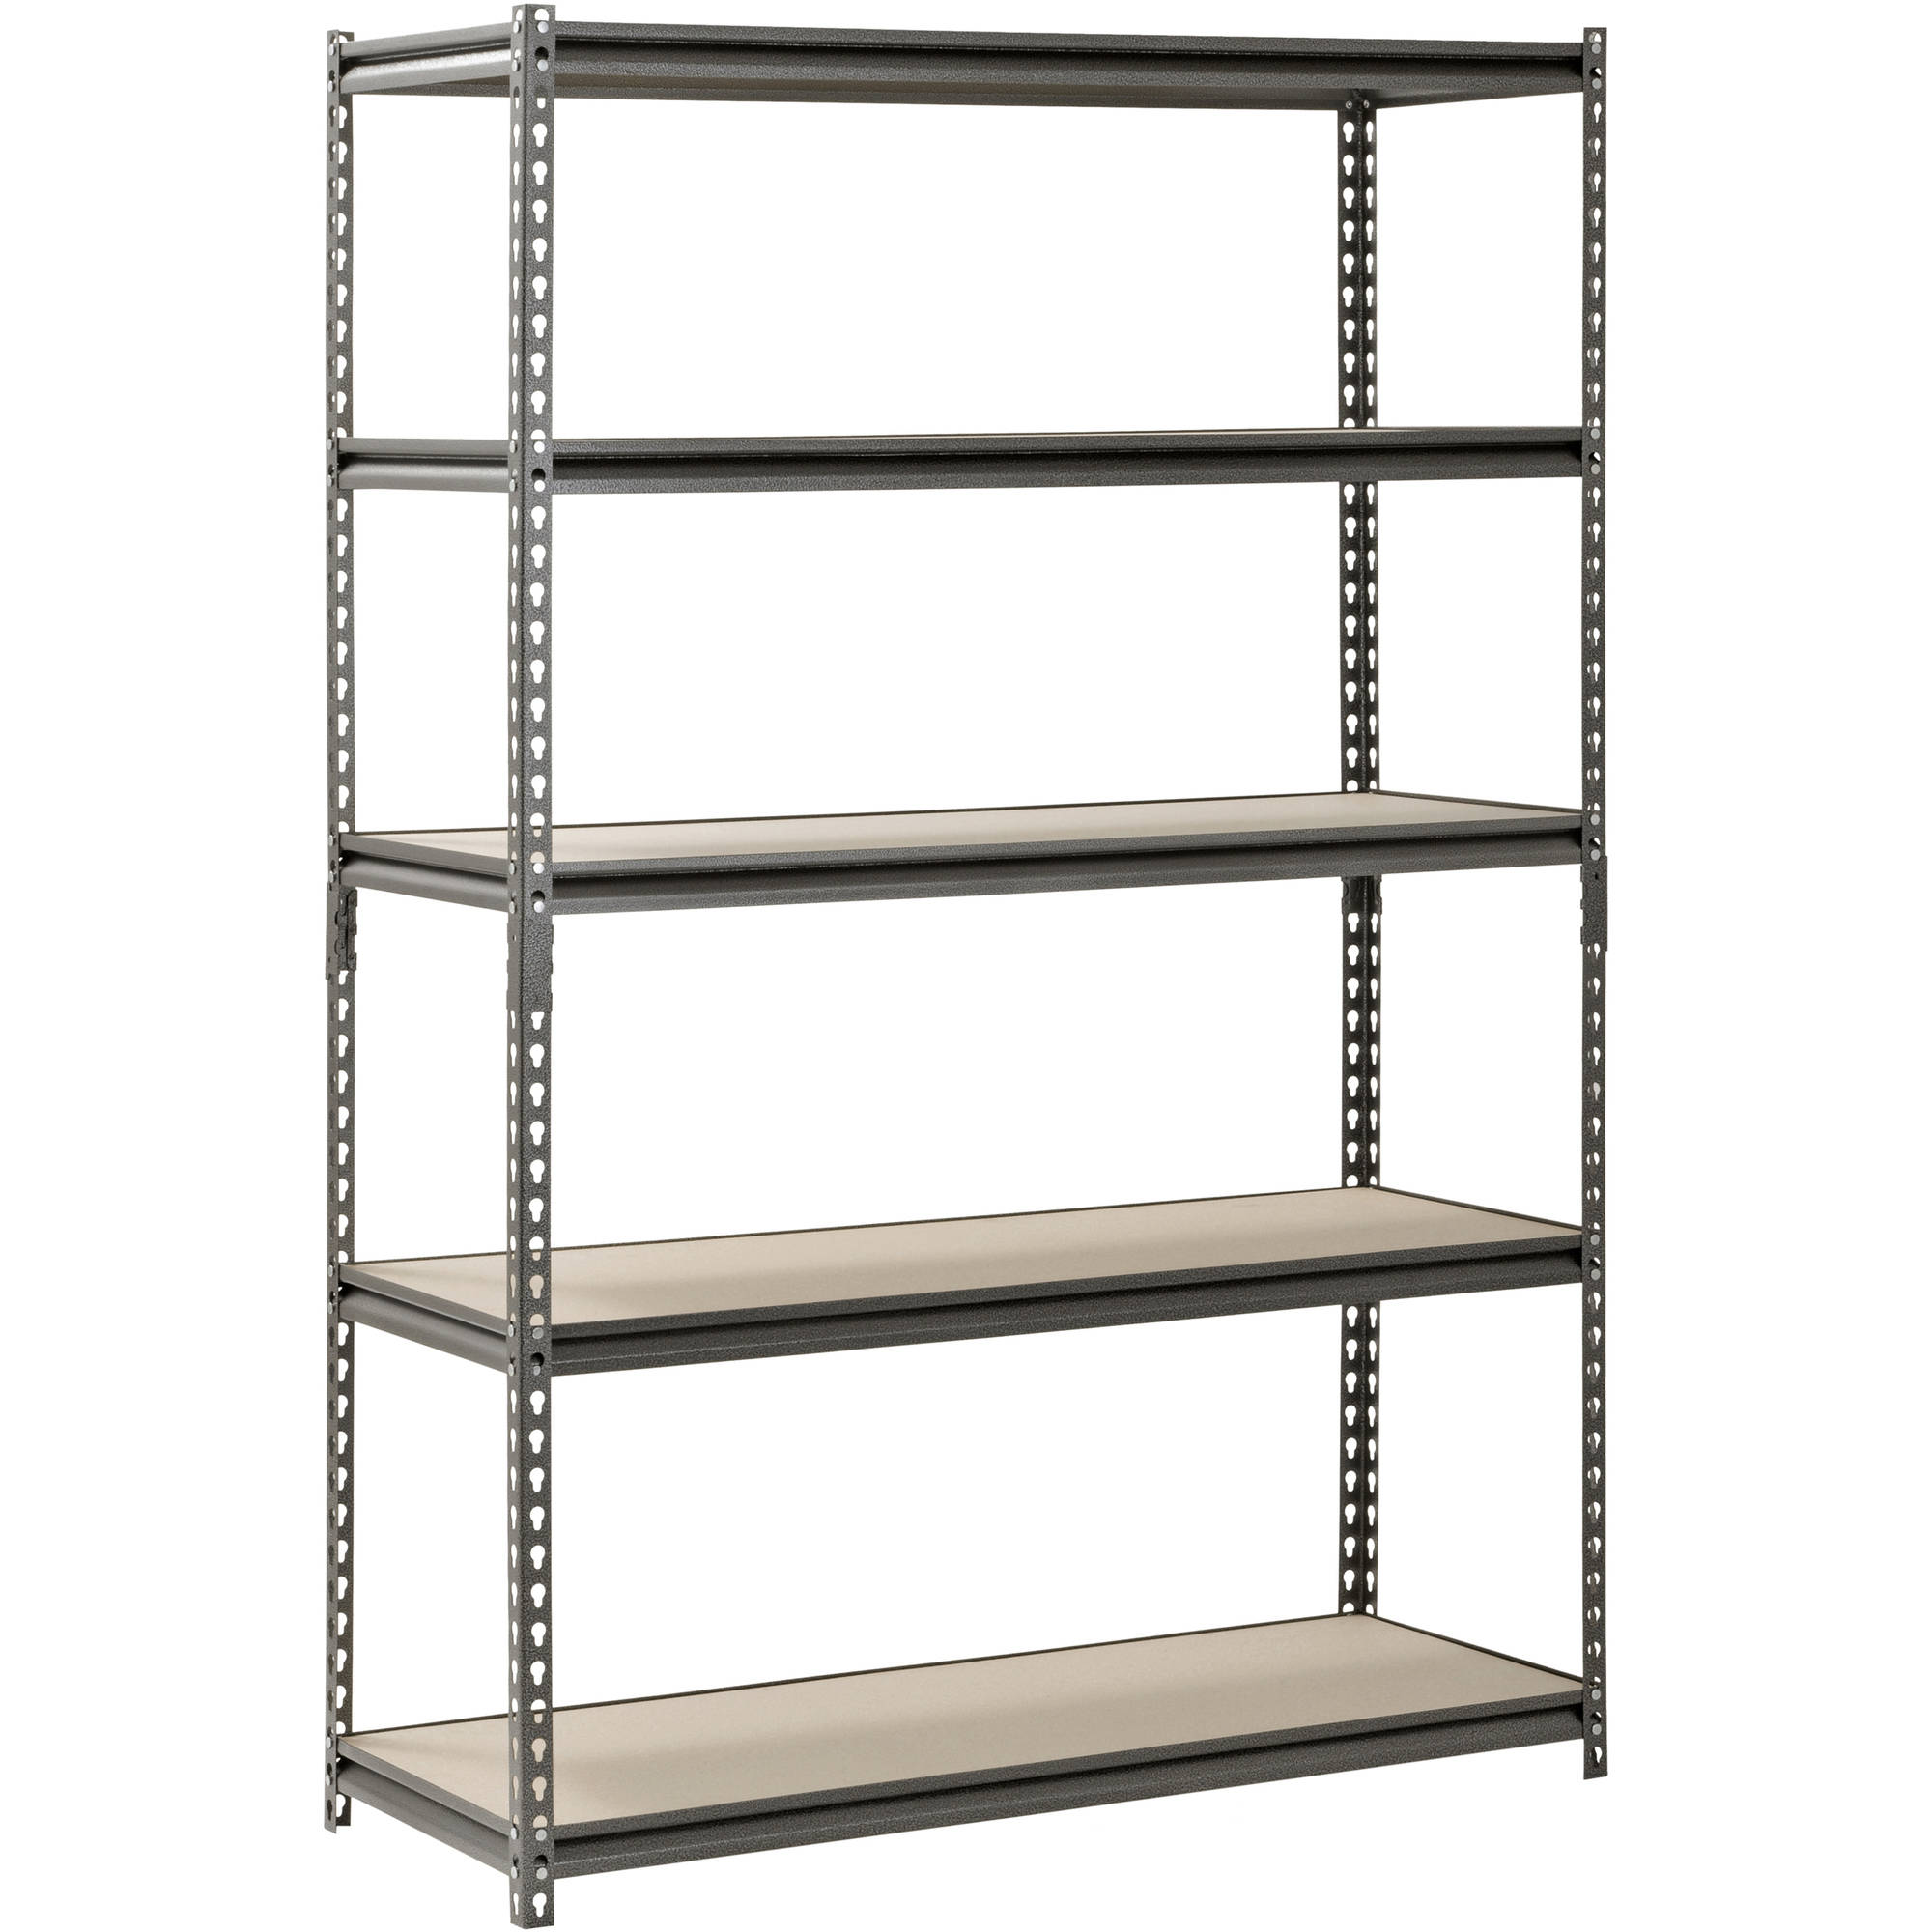 Muscle Rack 48″ W x 18″ D x 72″ H, 5-Shelf Steel Shelving, Silver-Vein